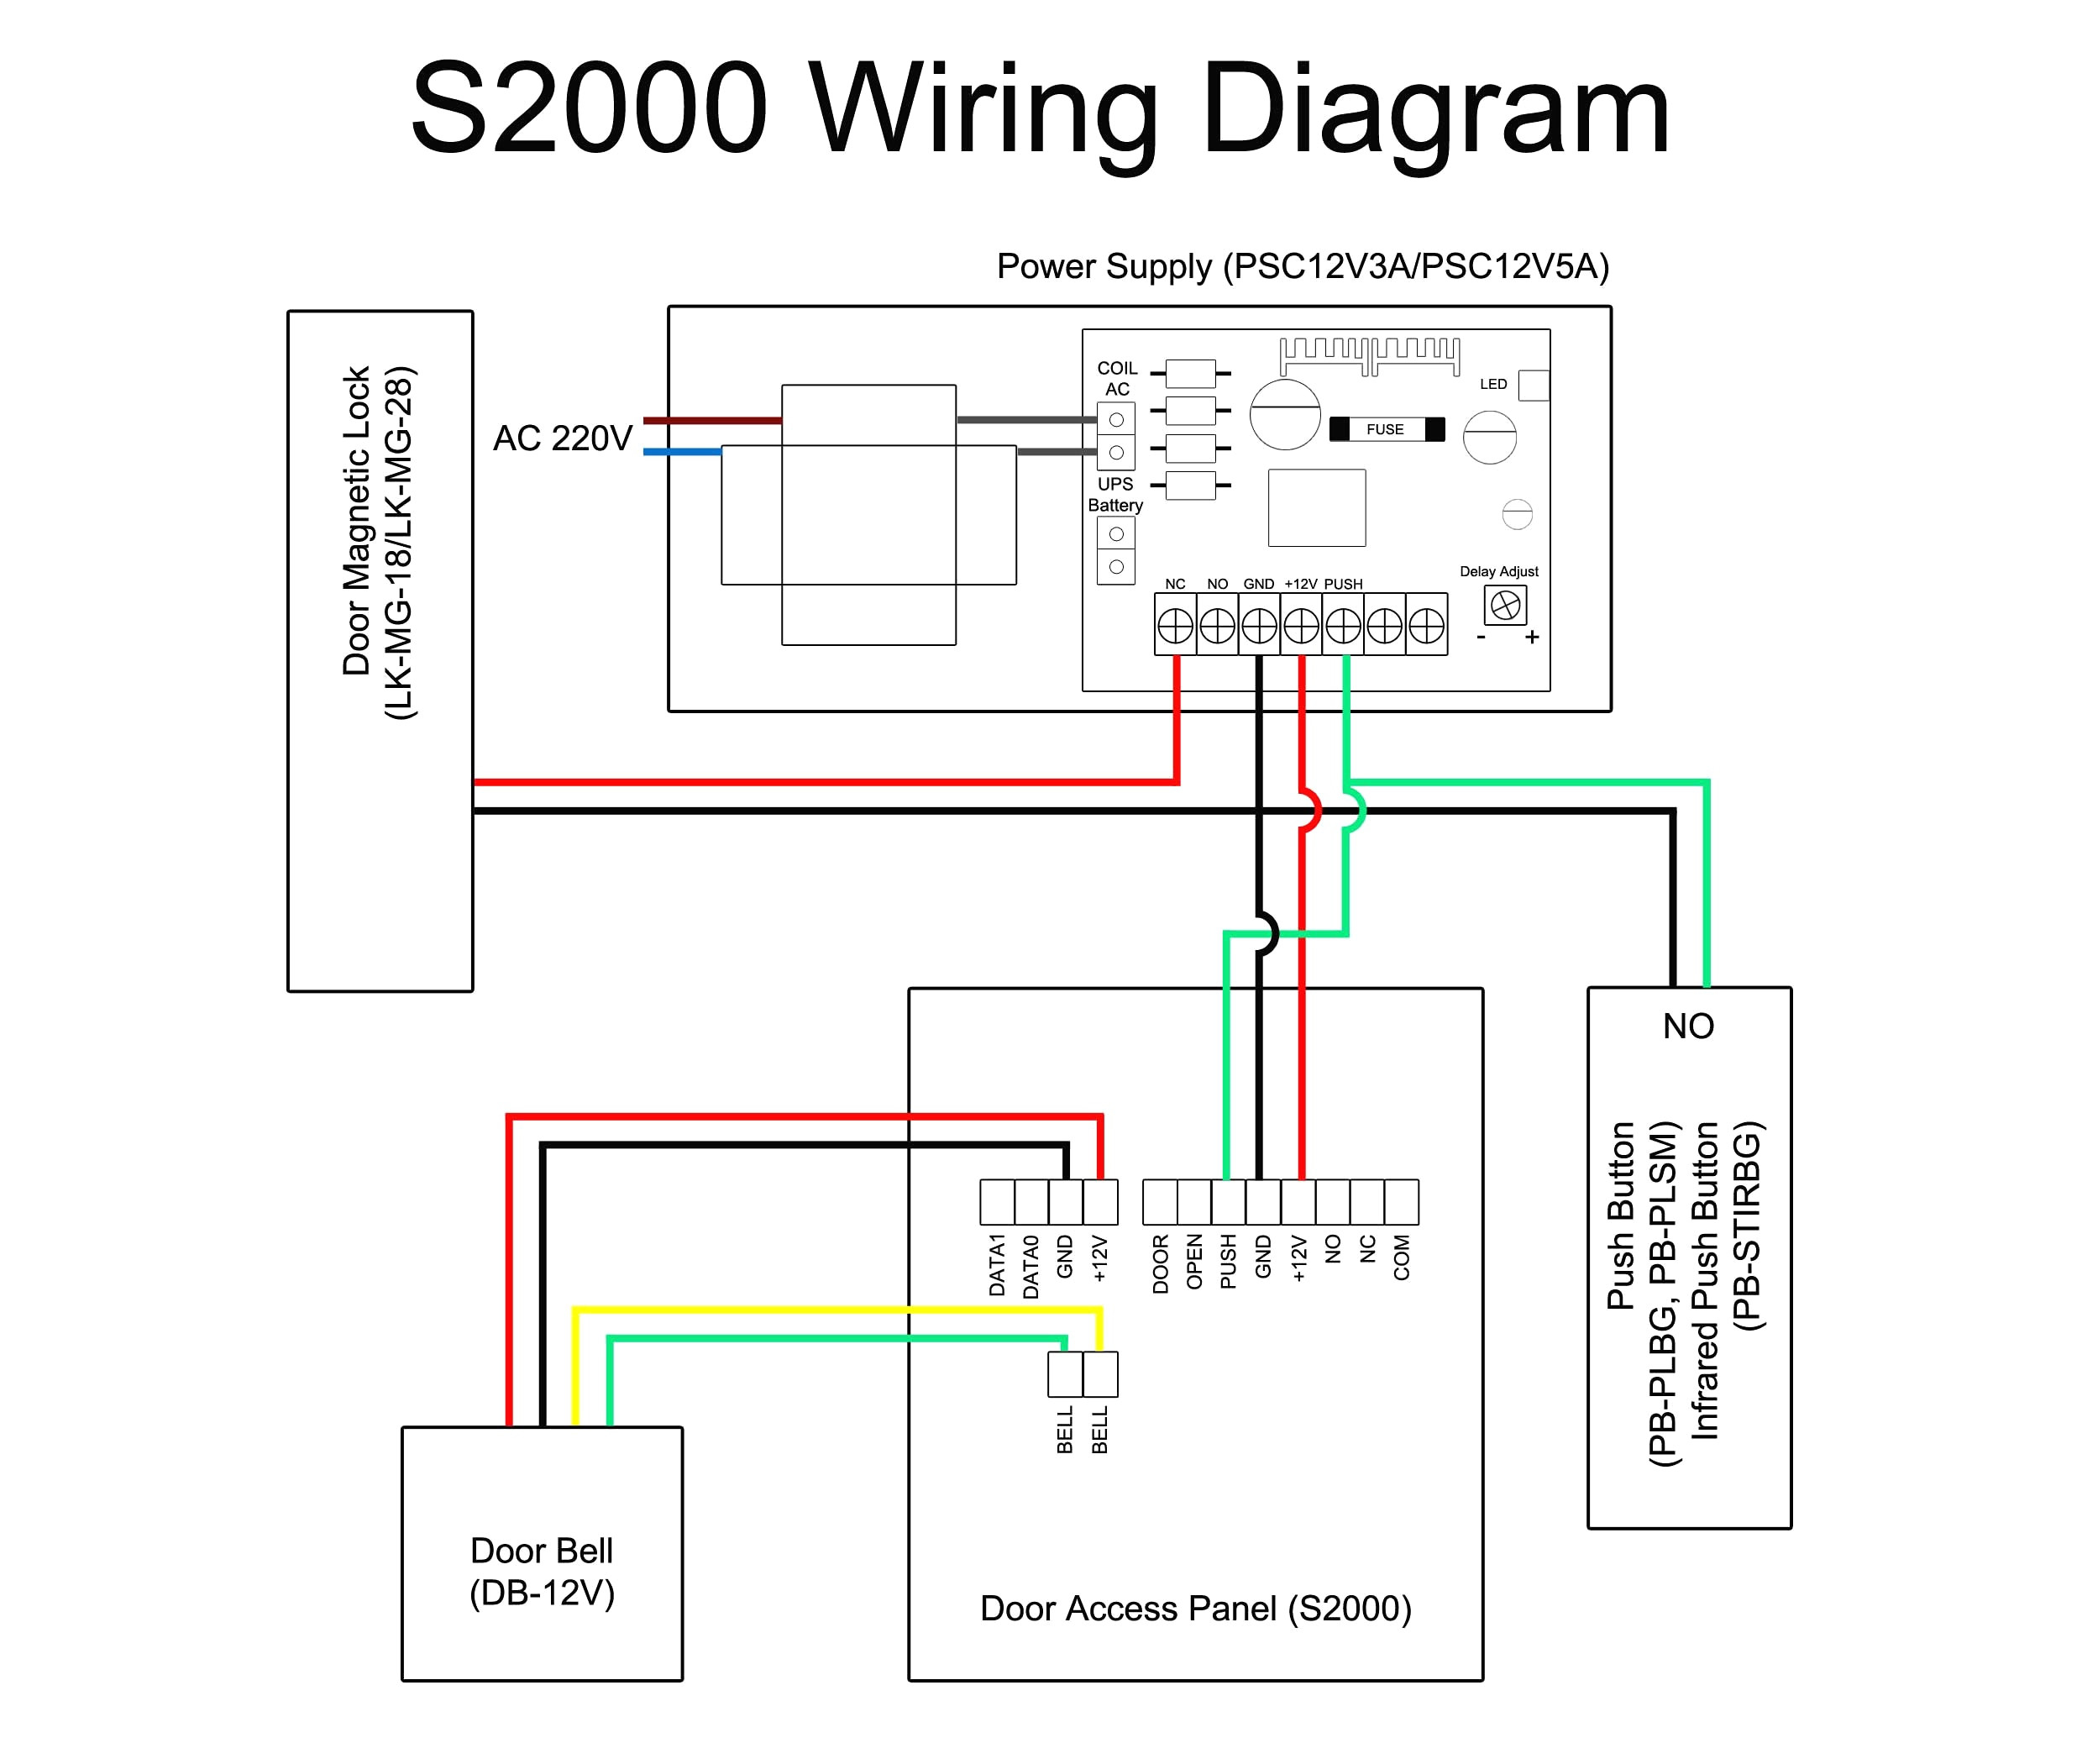 Samsung Wiring Diagram Electrical Surround Sound Security Camera Collection 30 Pin